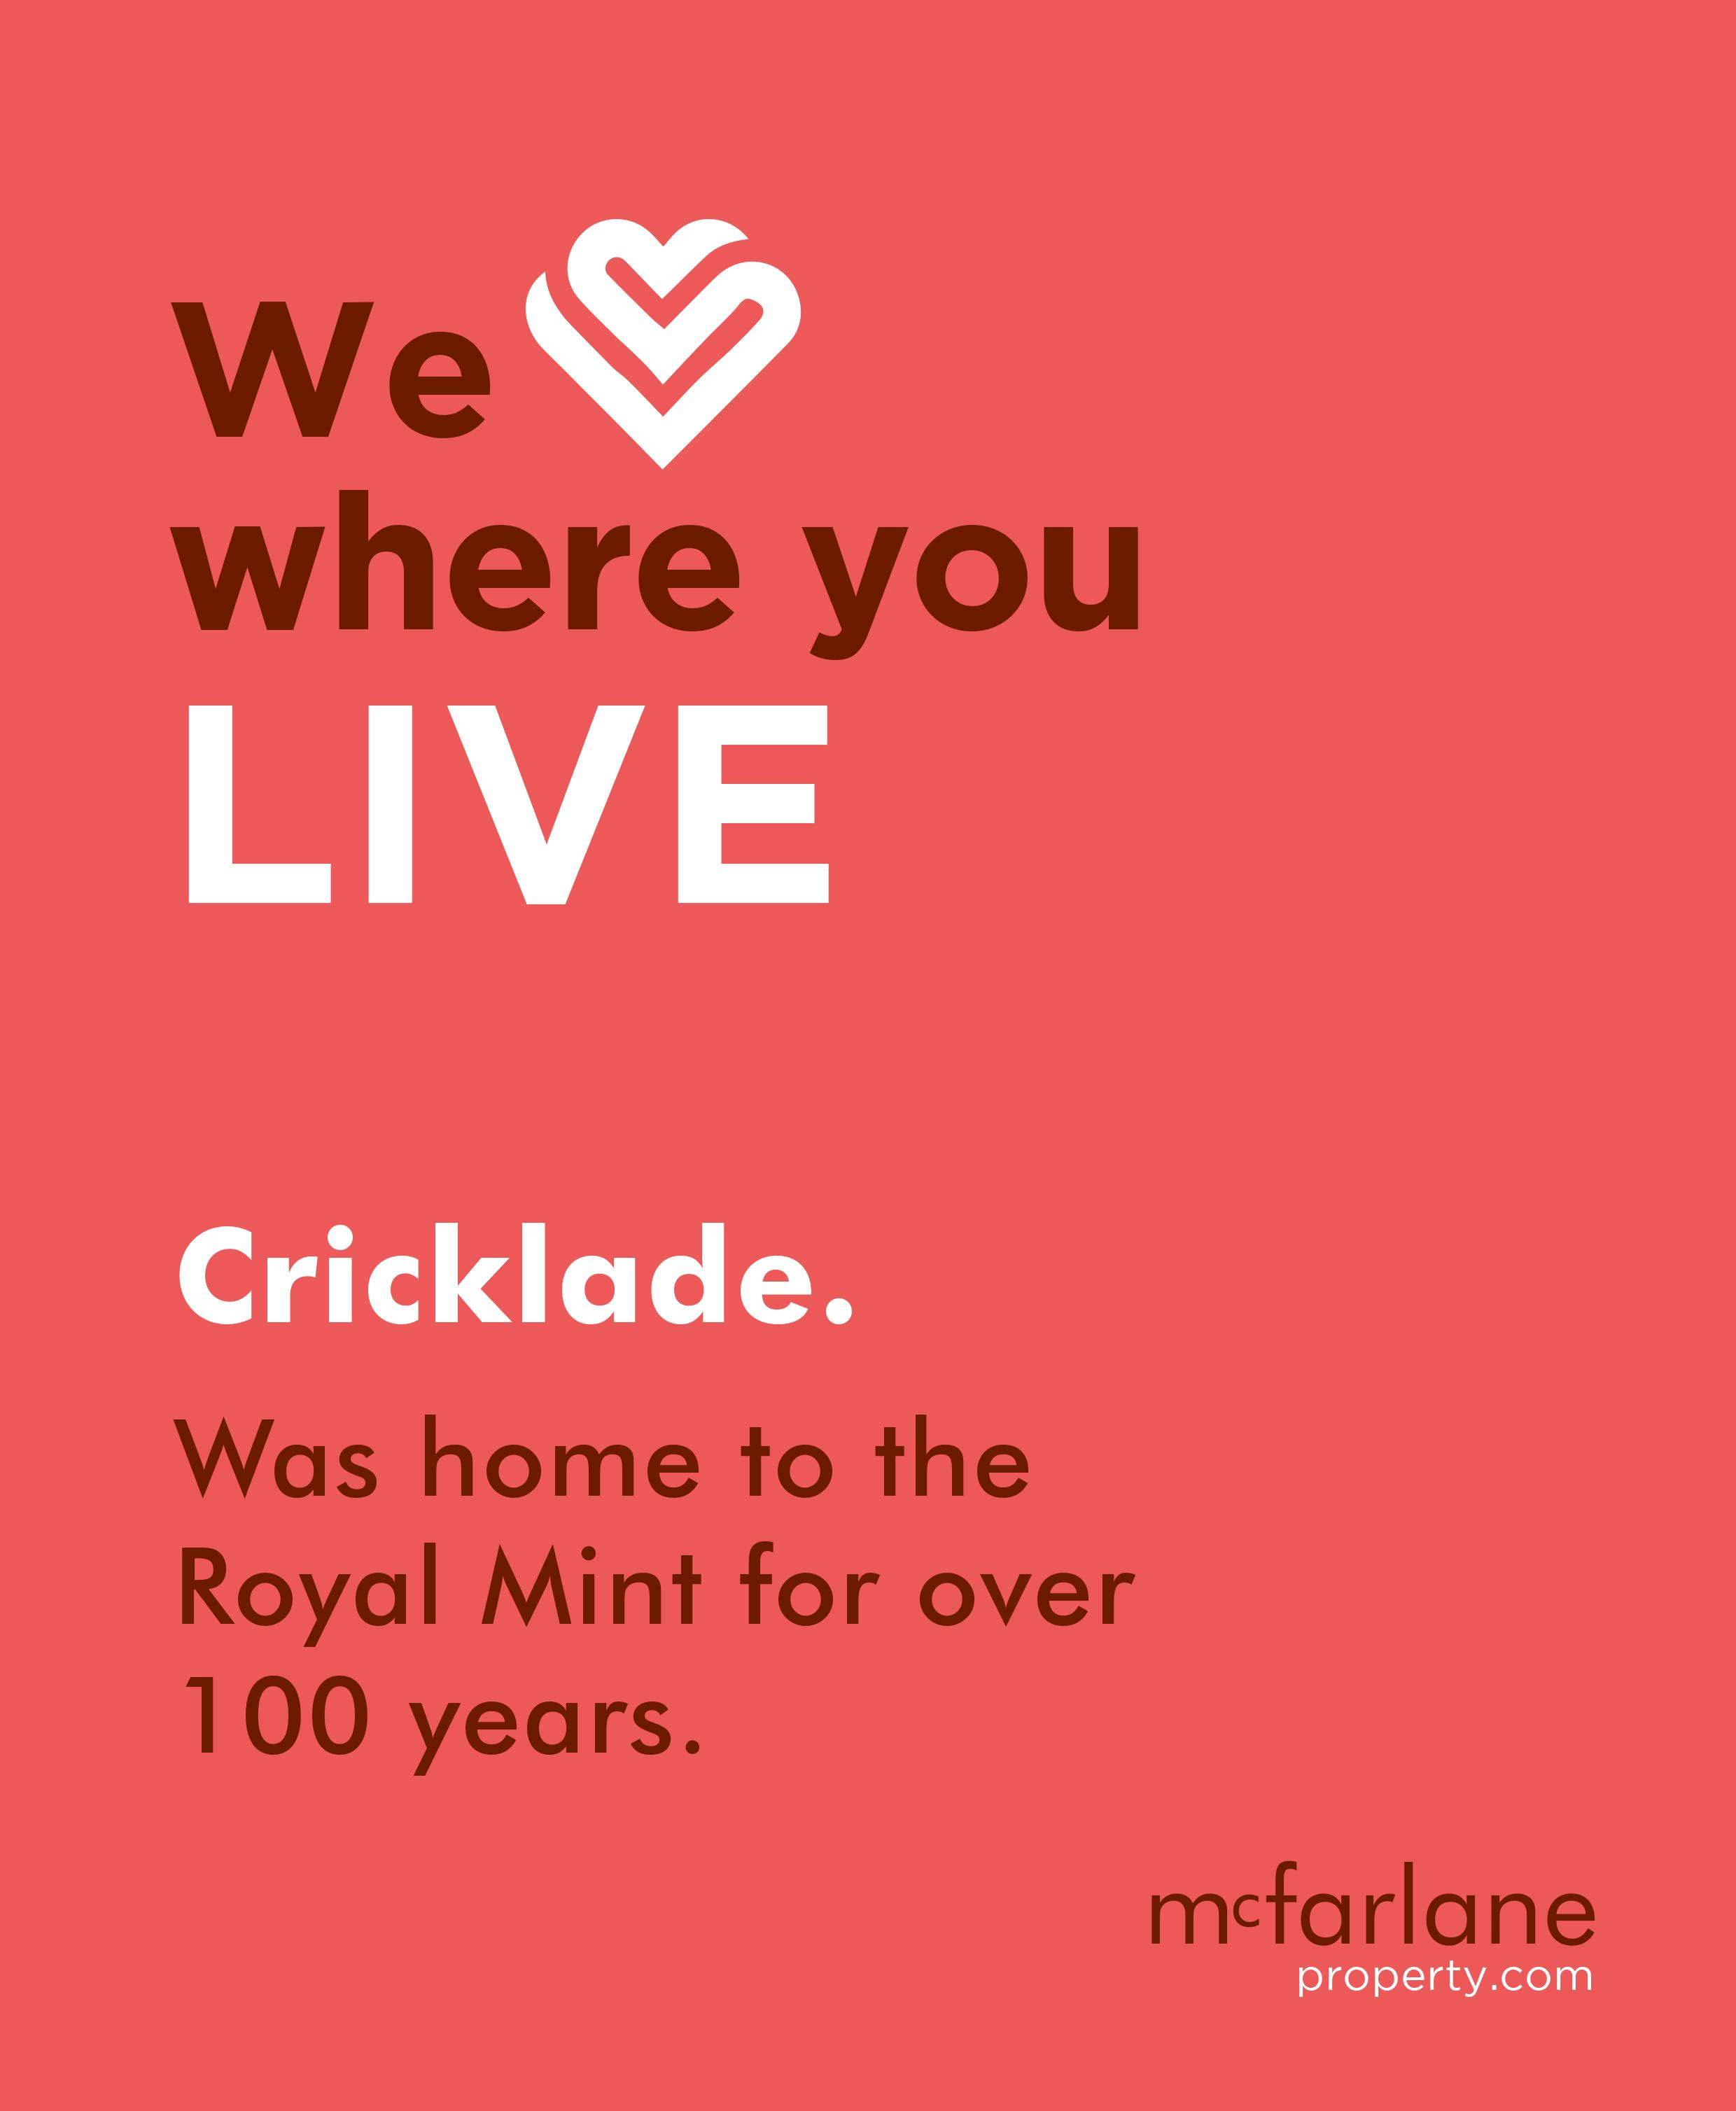 We love where you live: Cricklade